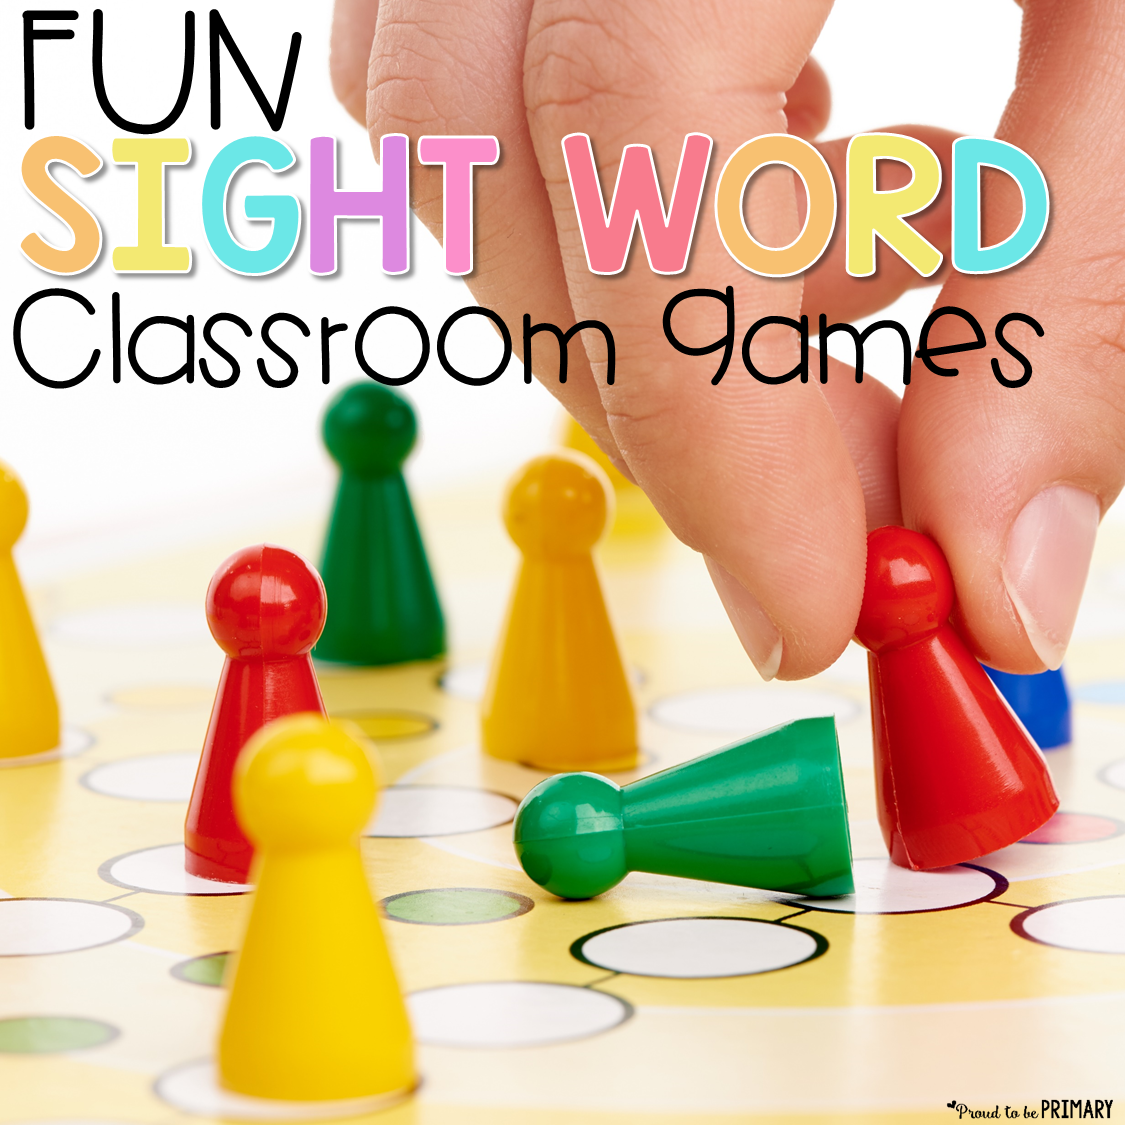 fun sight word classroom games